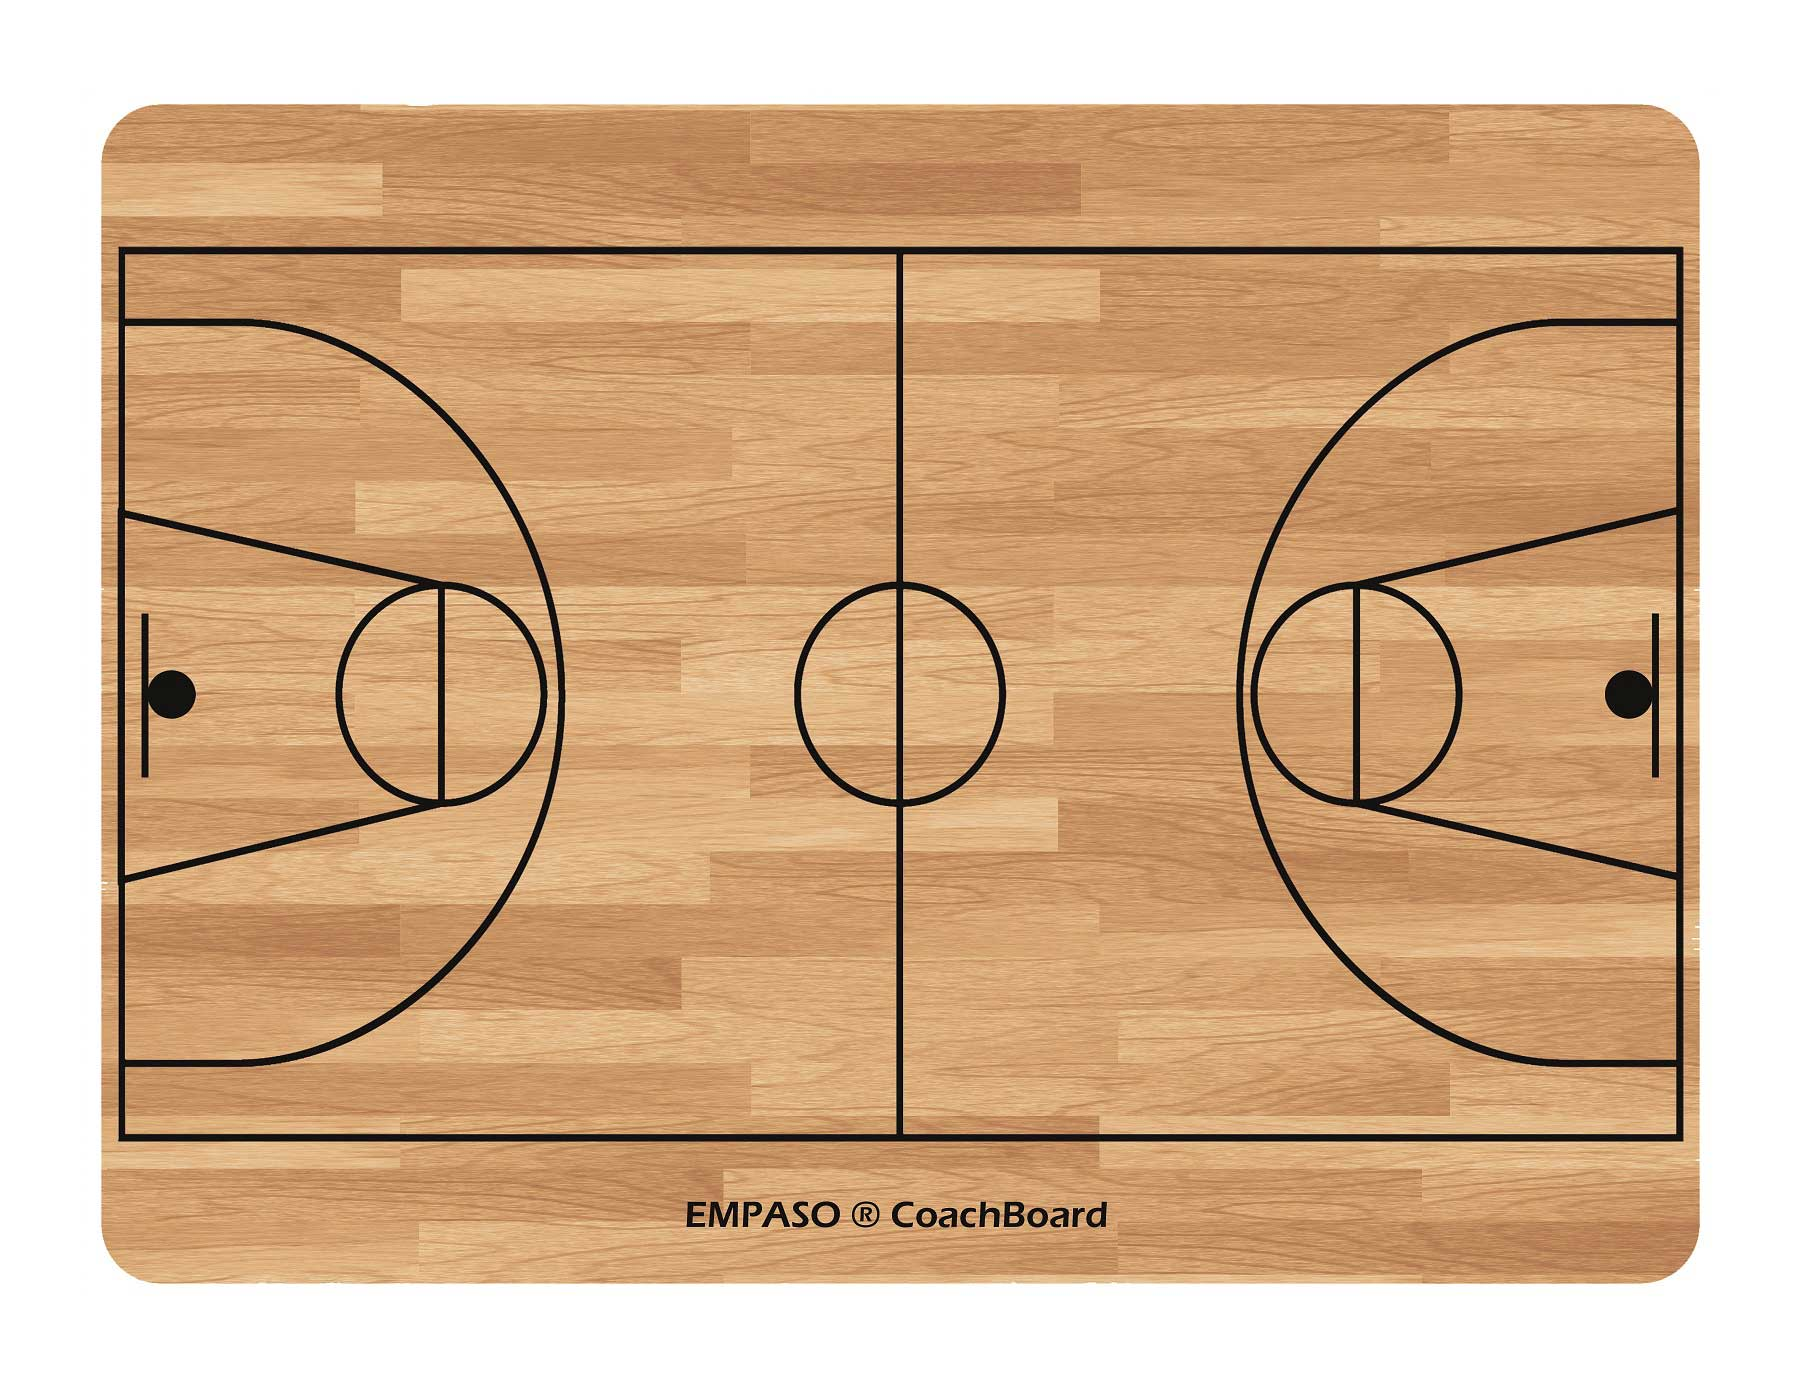 EMPASO Coach board - Coach Tactical Board – Basketball Coaching Board